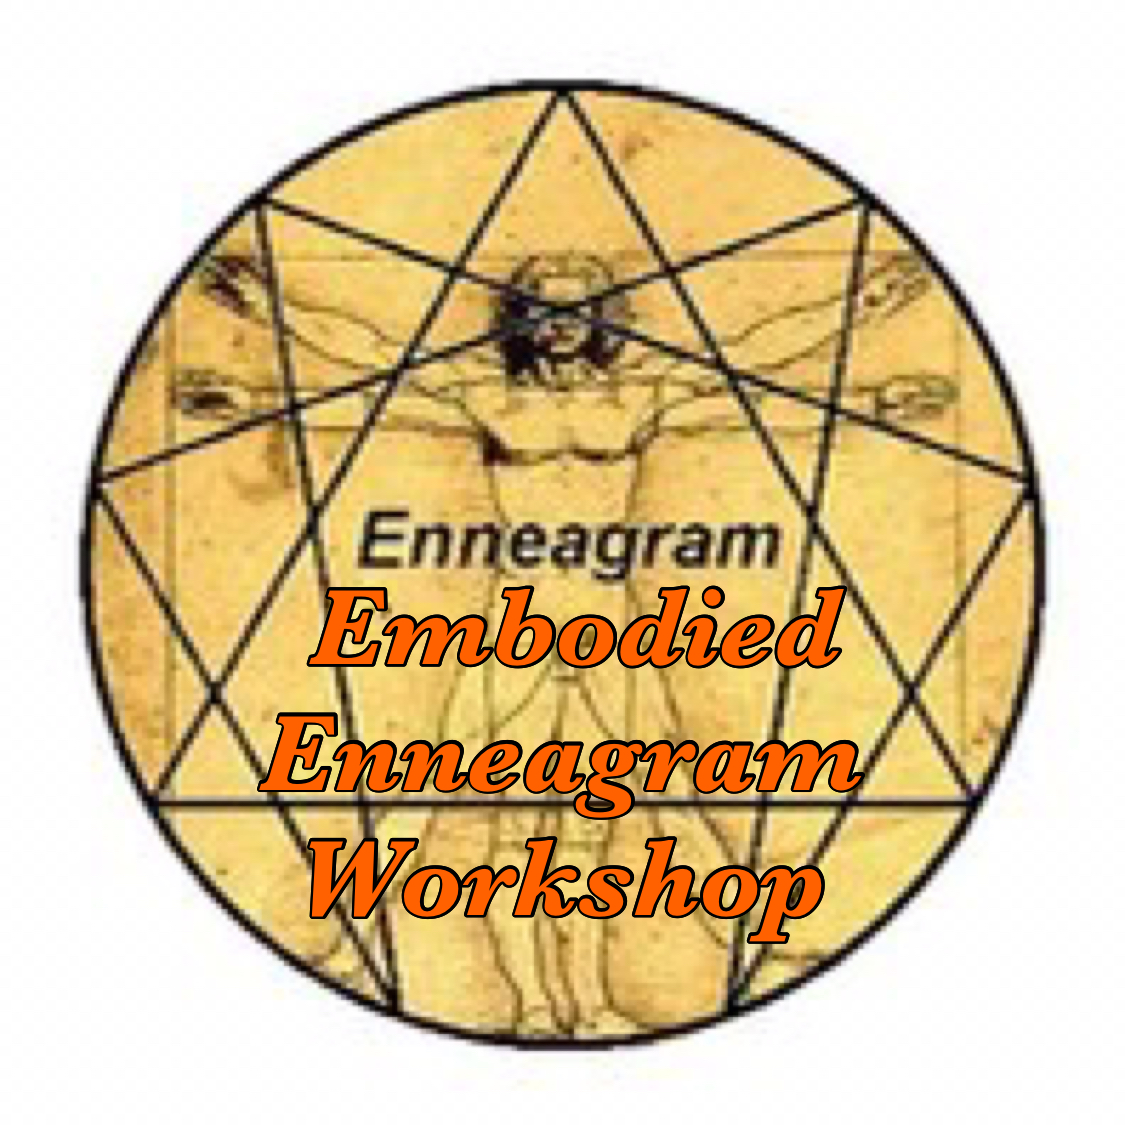 Embodied Workshop